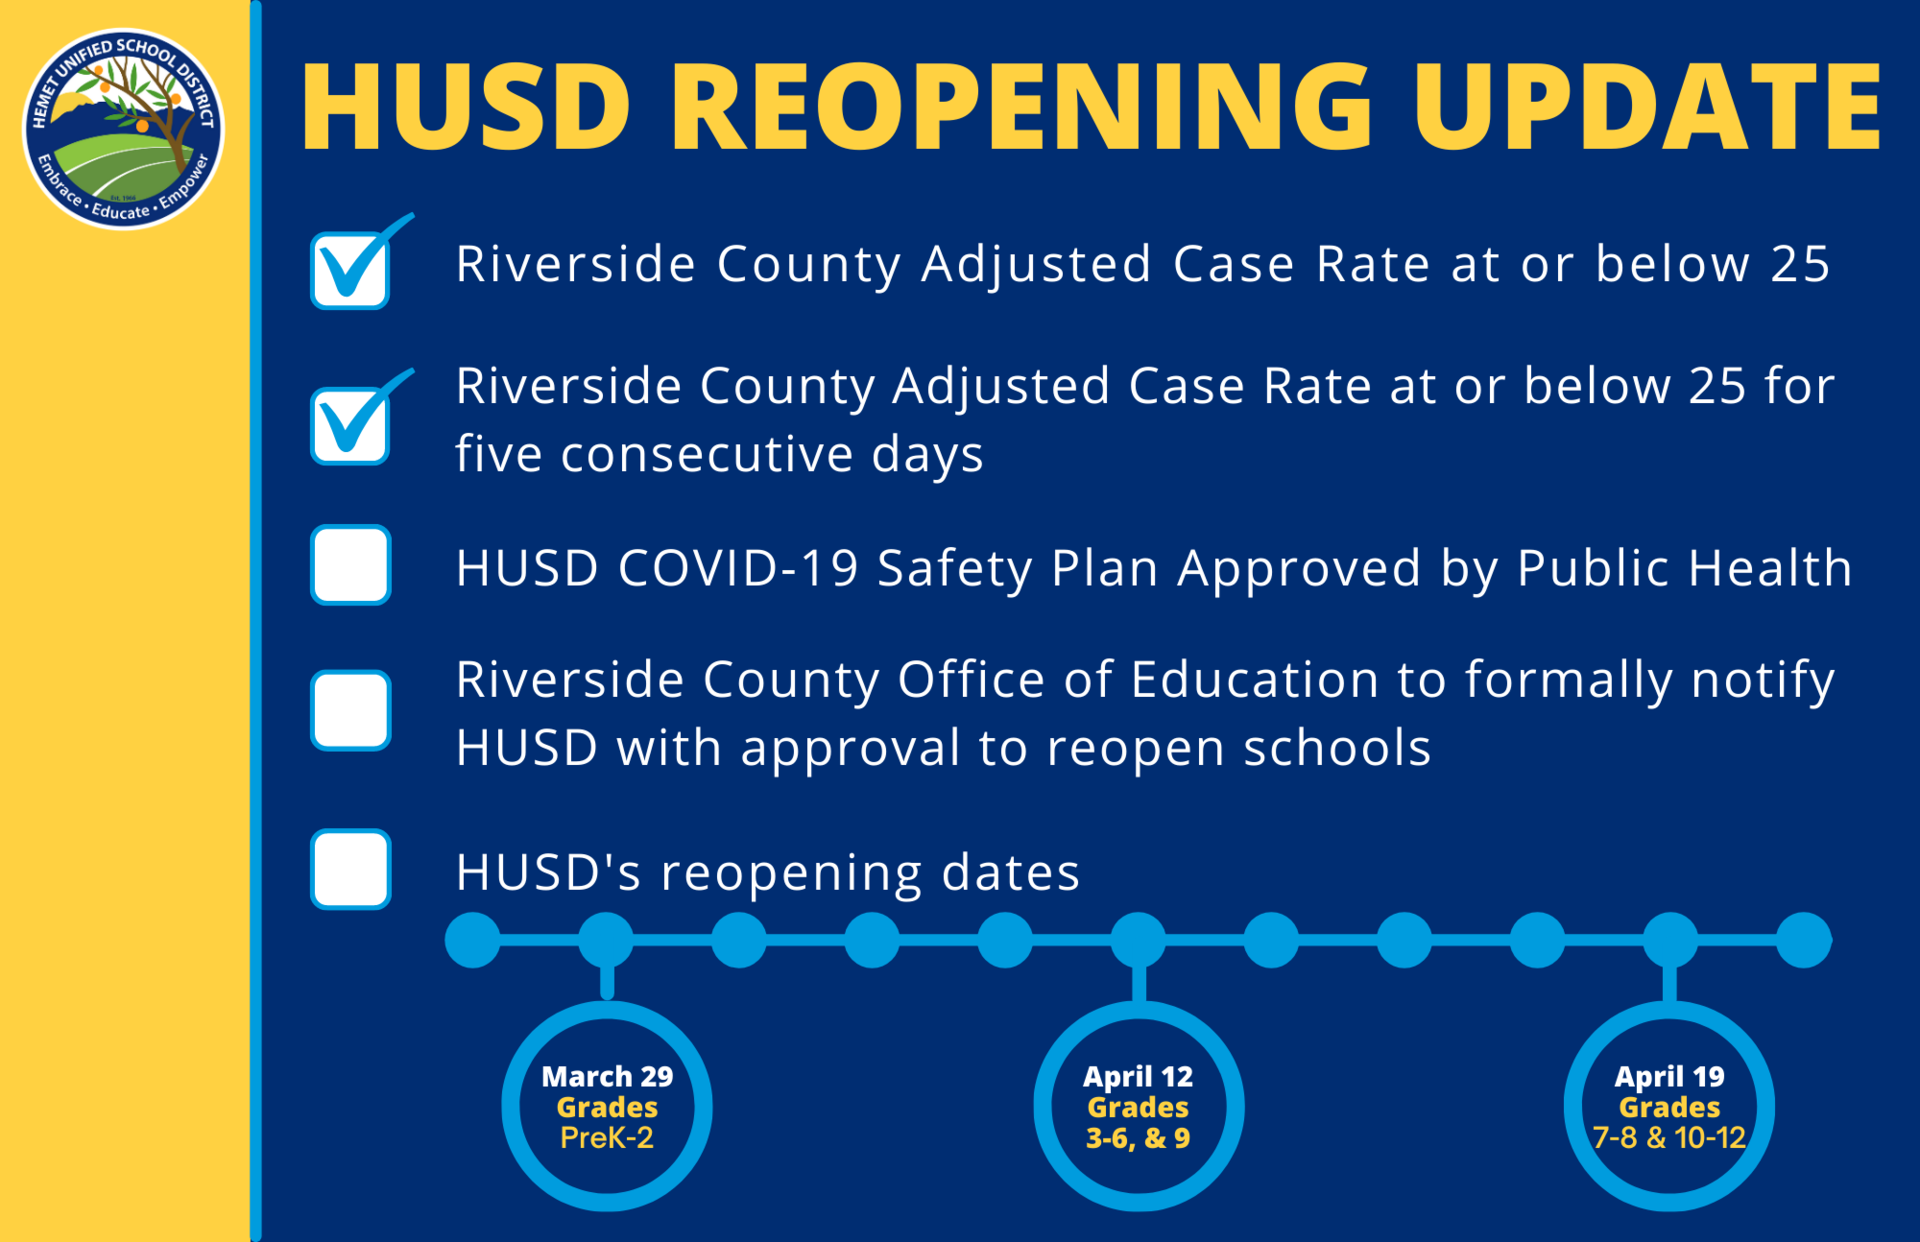 HUSD's Reopening Timeline